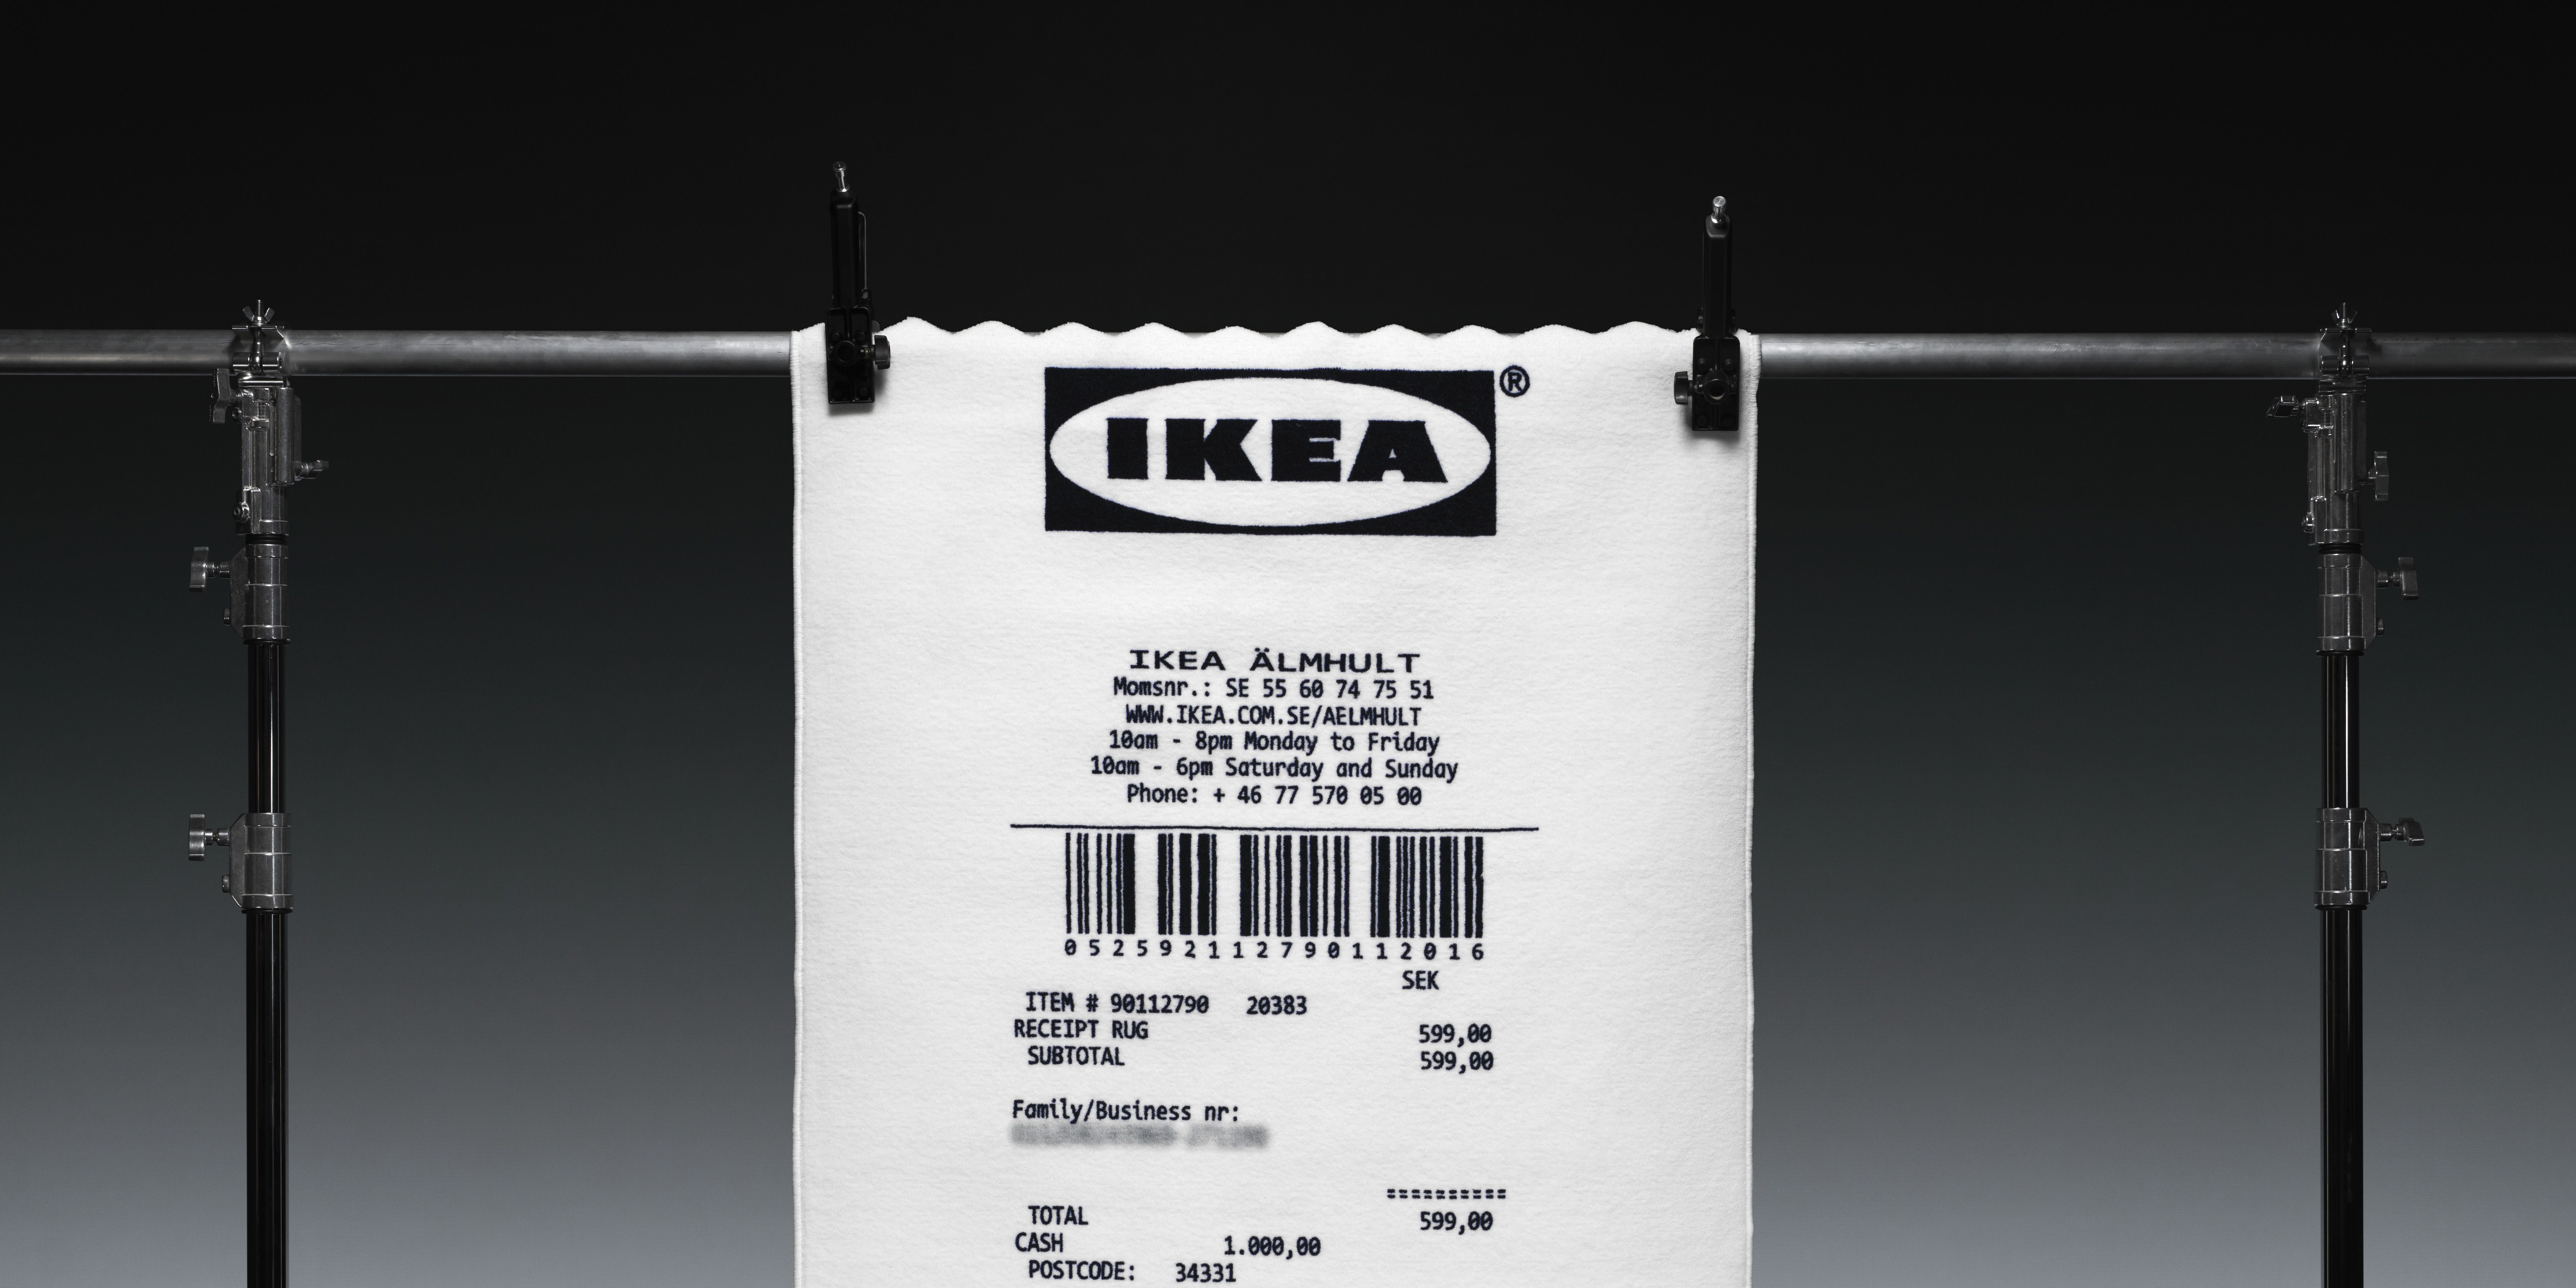 Ikea shopping receipt rug designed by Virgil Abloh - Democratic Design Day 2018